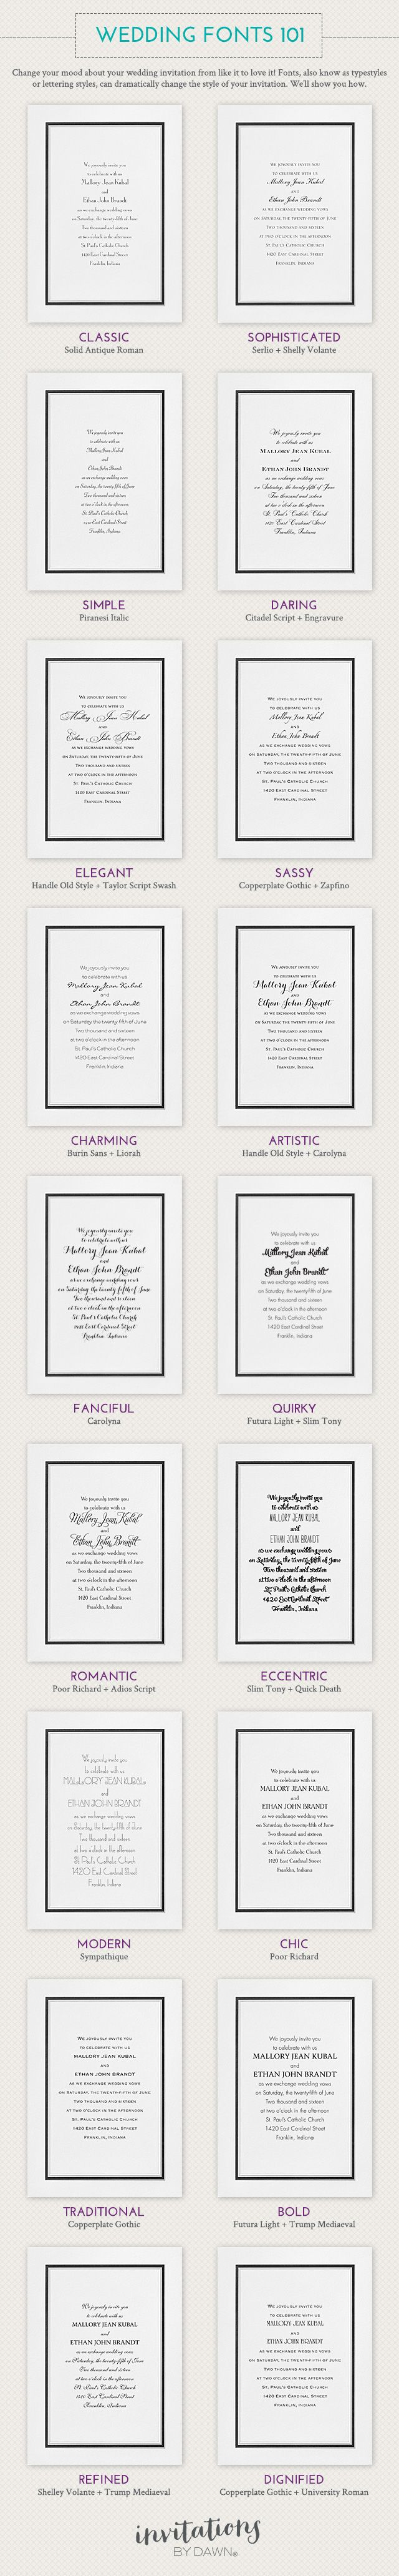 Wedding Fonts 101 - Change your mood about your wedding invitation from like it to love it! Fonts, also known as typestyles or lettering styles, can dramatically change the style of your invitation. We'll show you how.